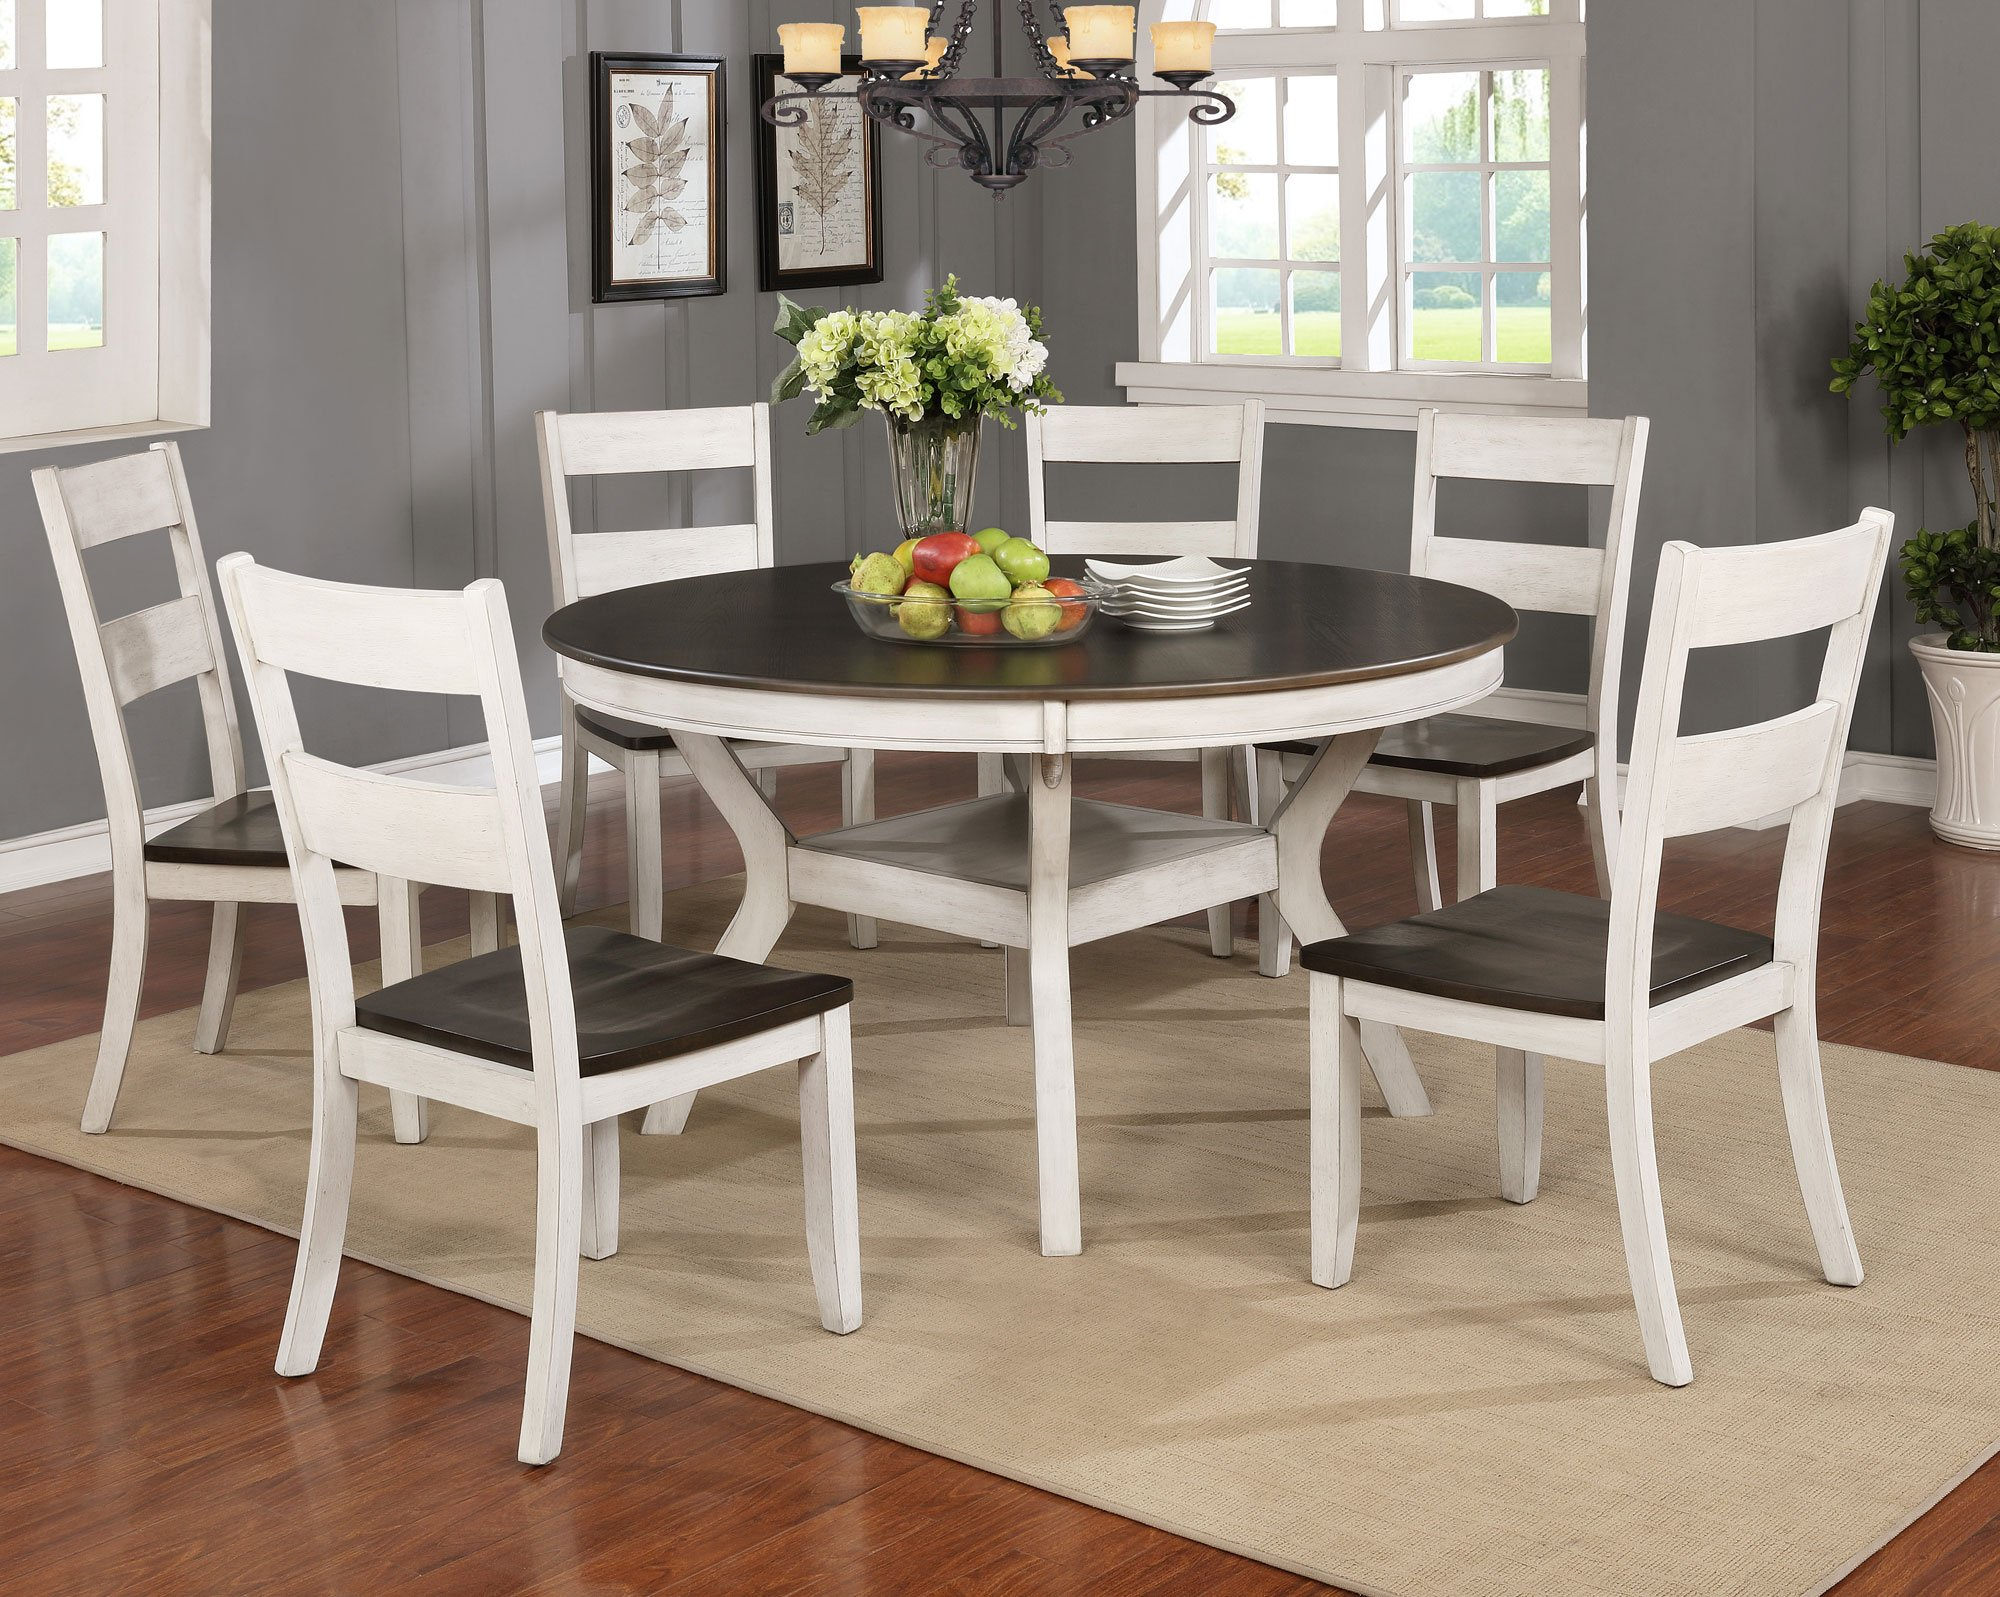 white and brown 7 piece dining set - perrin | rc willey furniture store